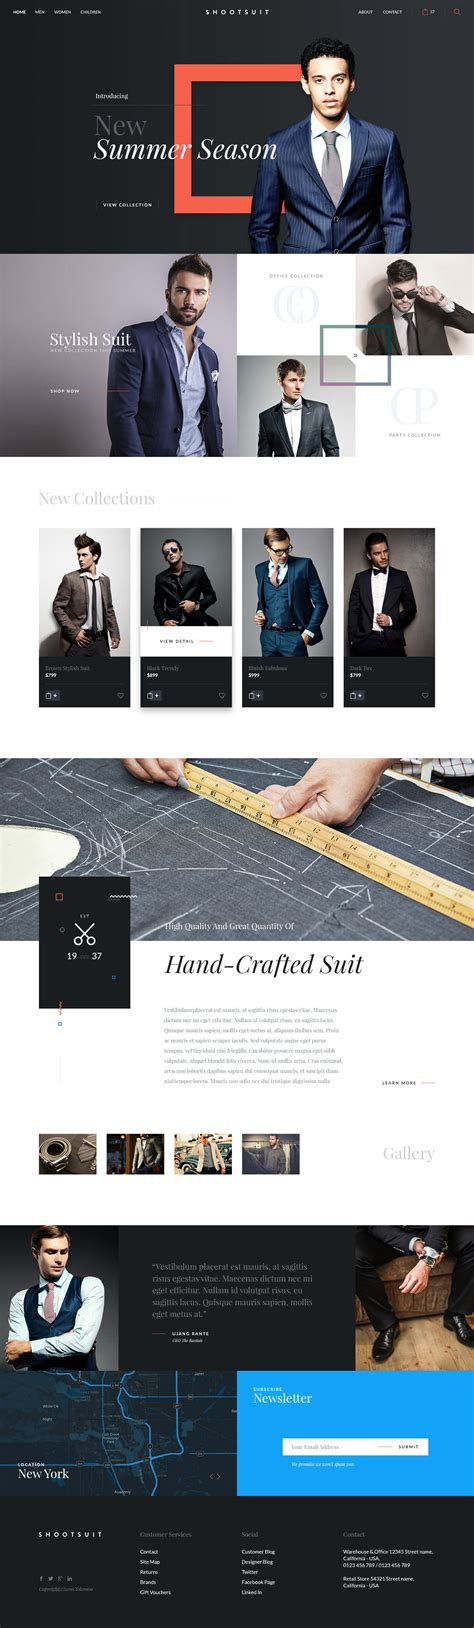 theme toko online woocommerce shootsuit fashionable woocommerce wordpress theme by